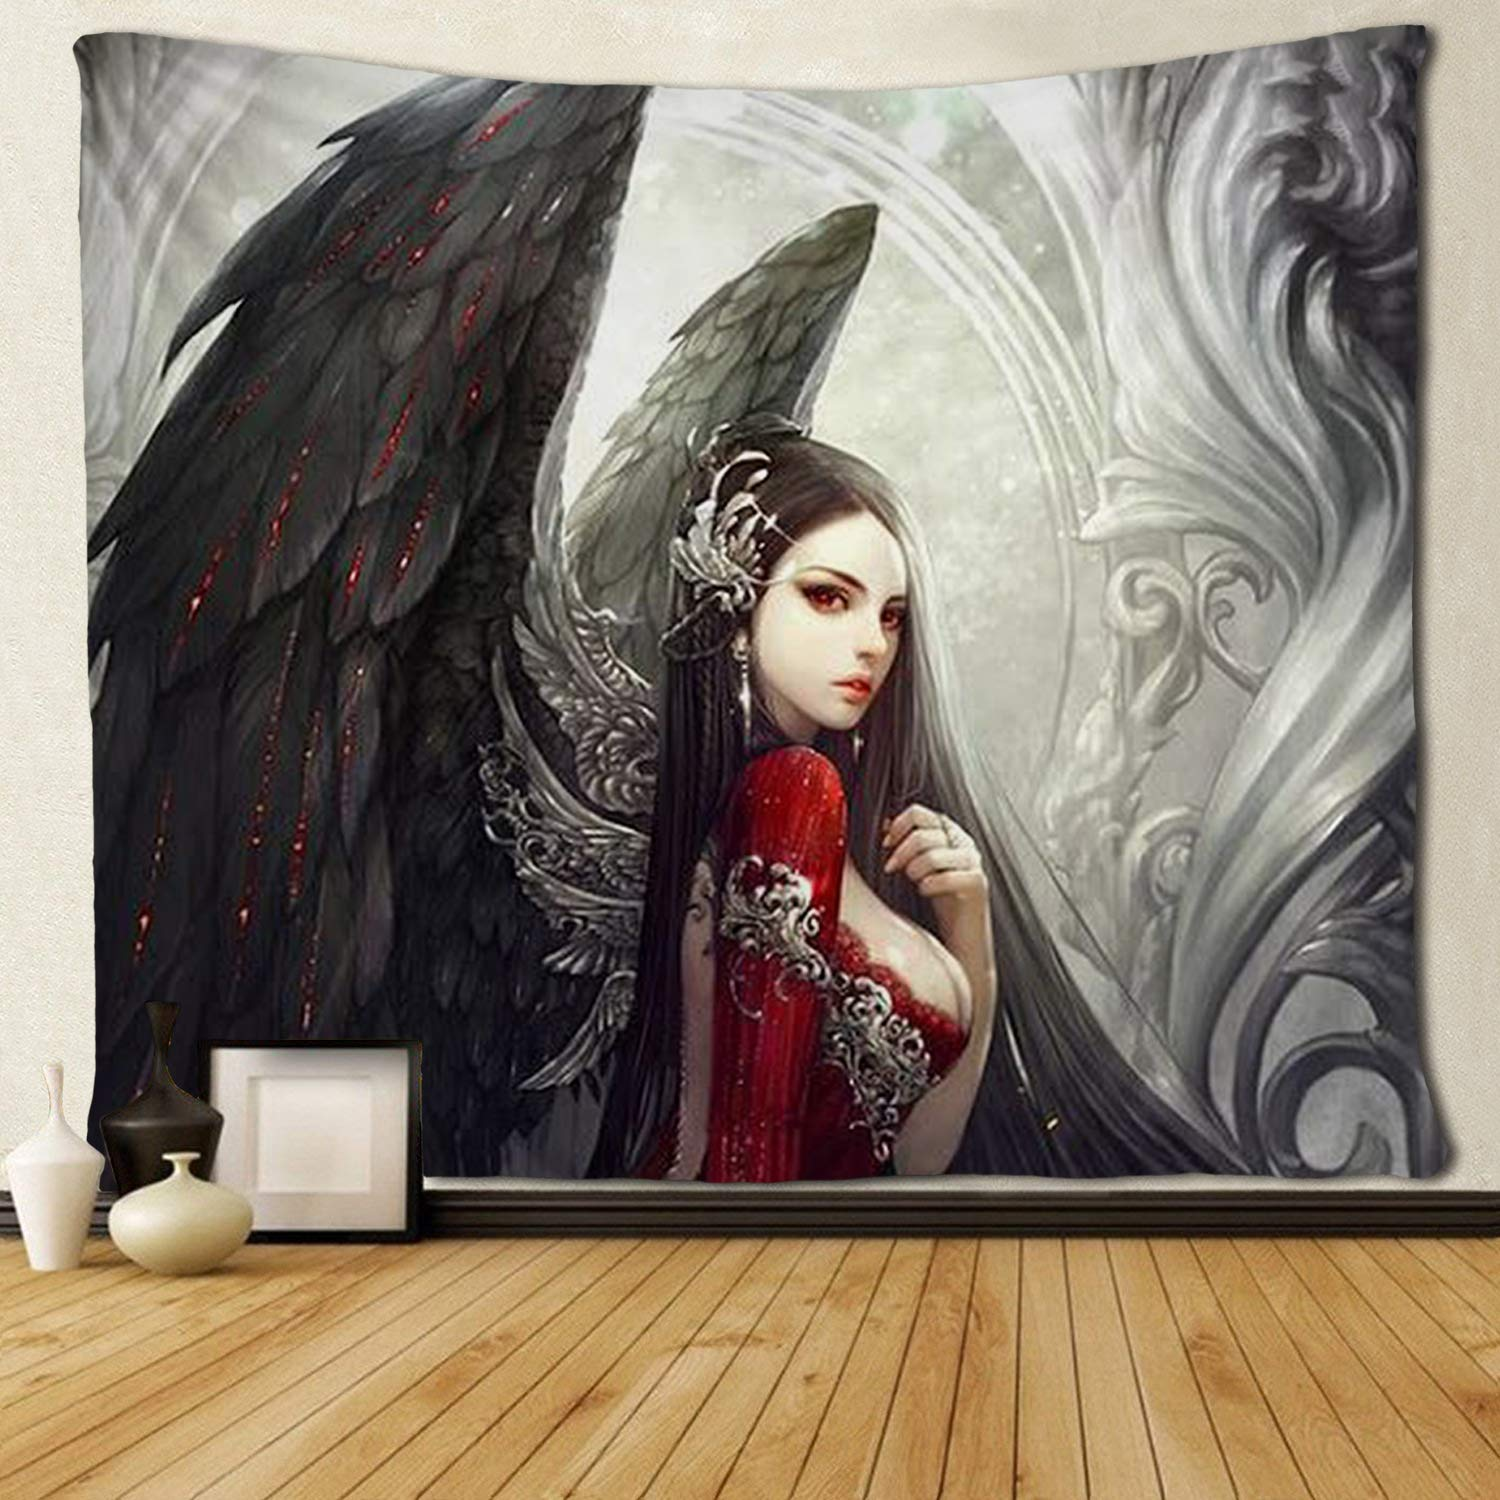 Goth Gothic Women Girl With Tapestries Hippie Art Wall Hanging Tablecloth